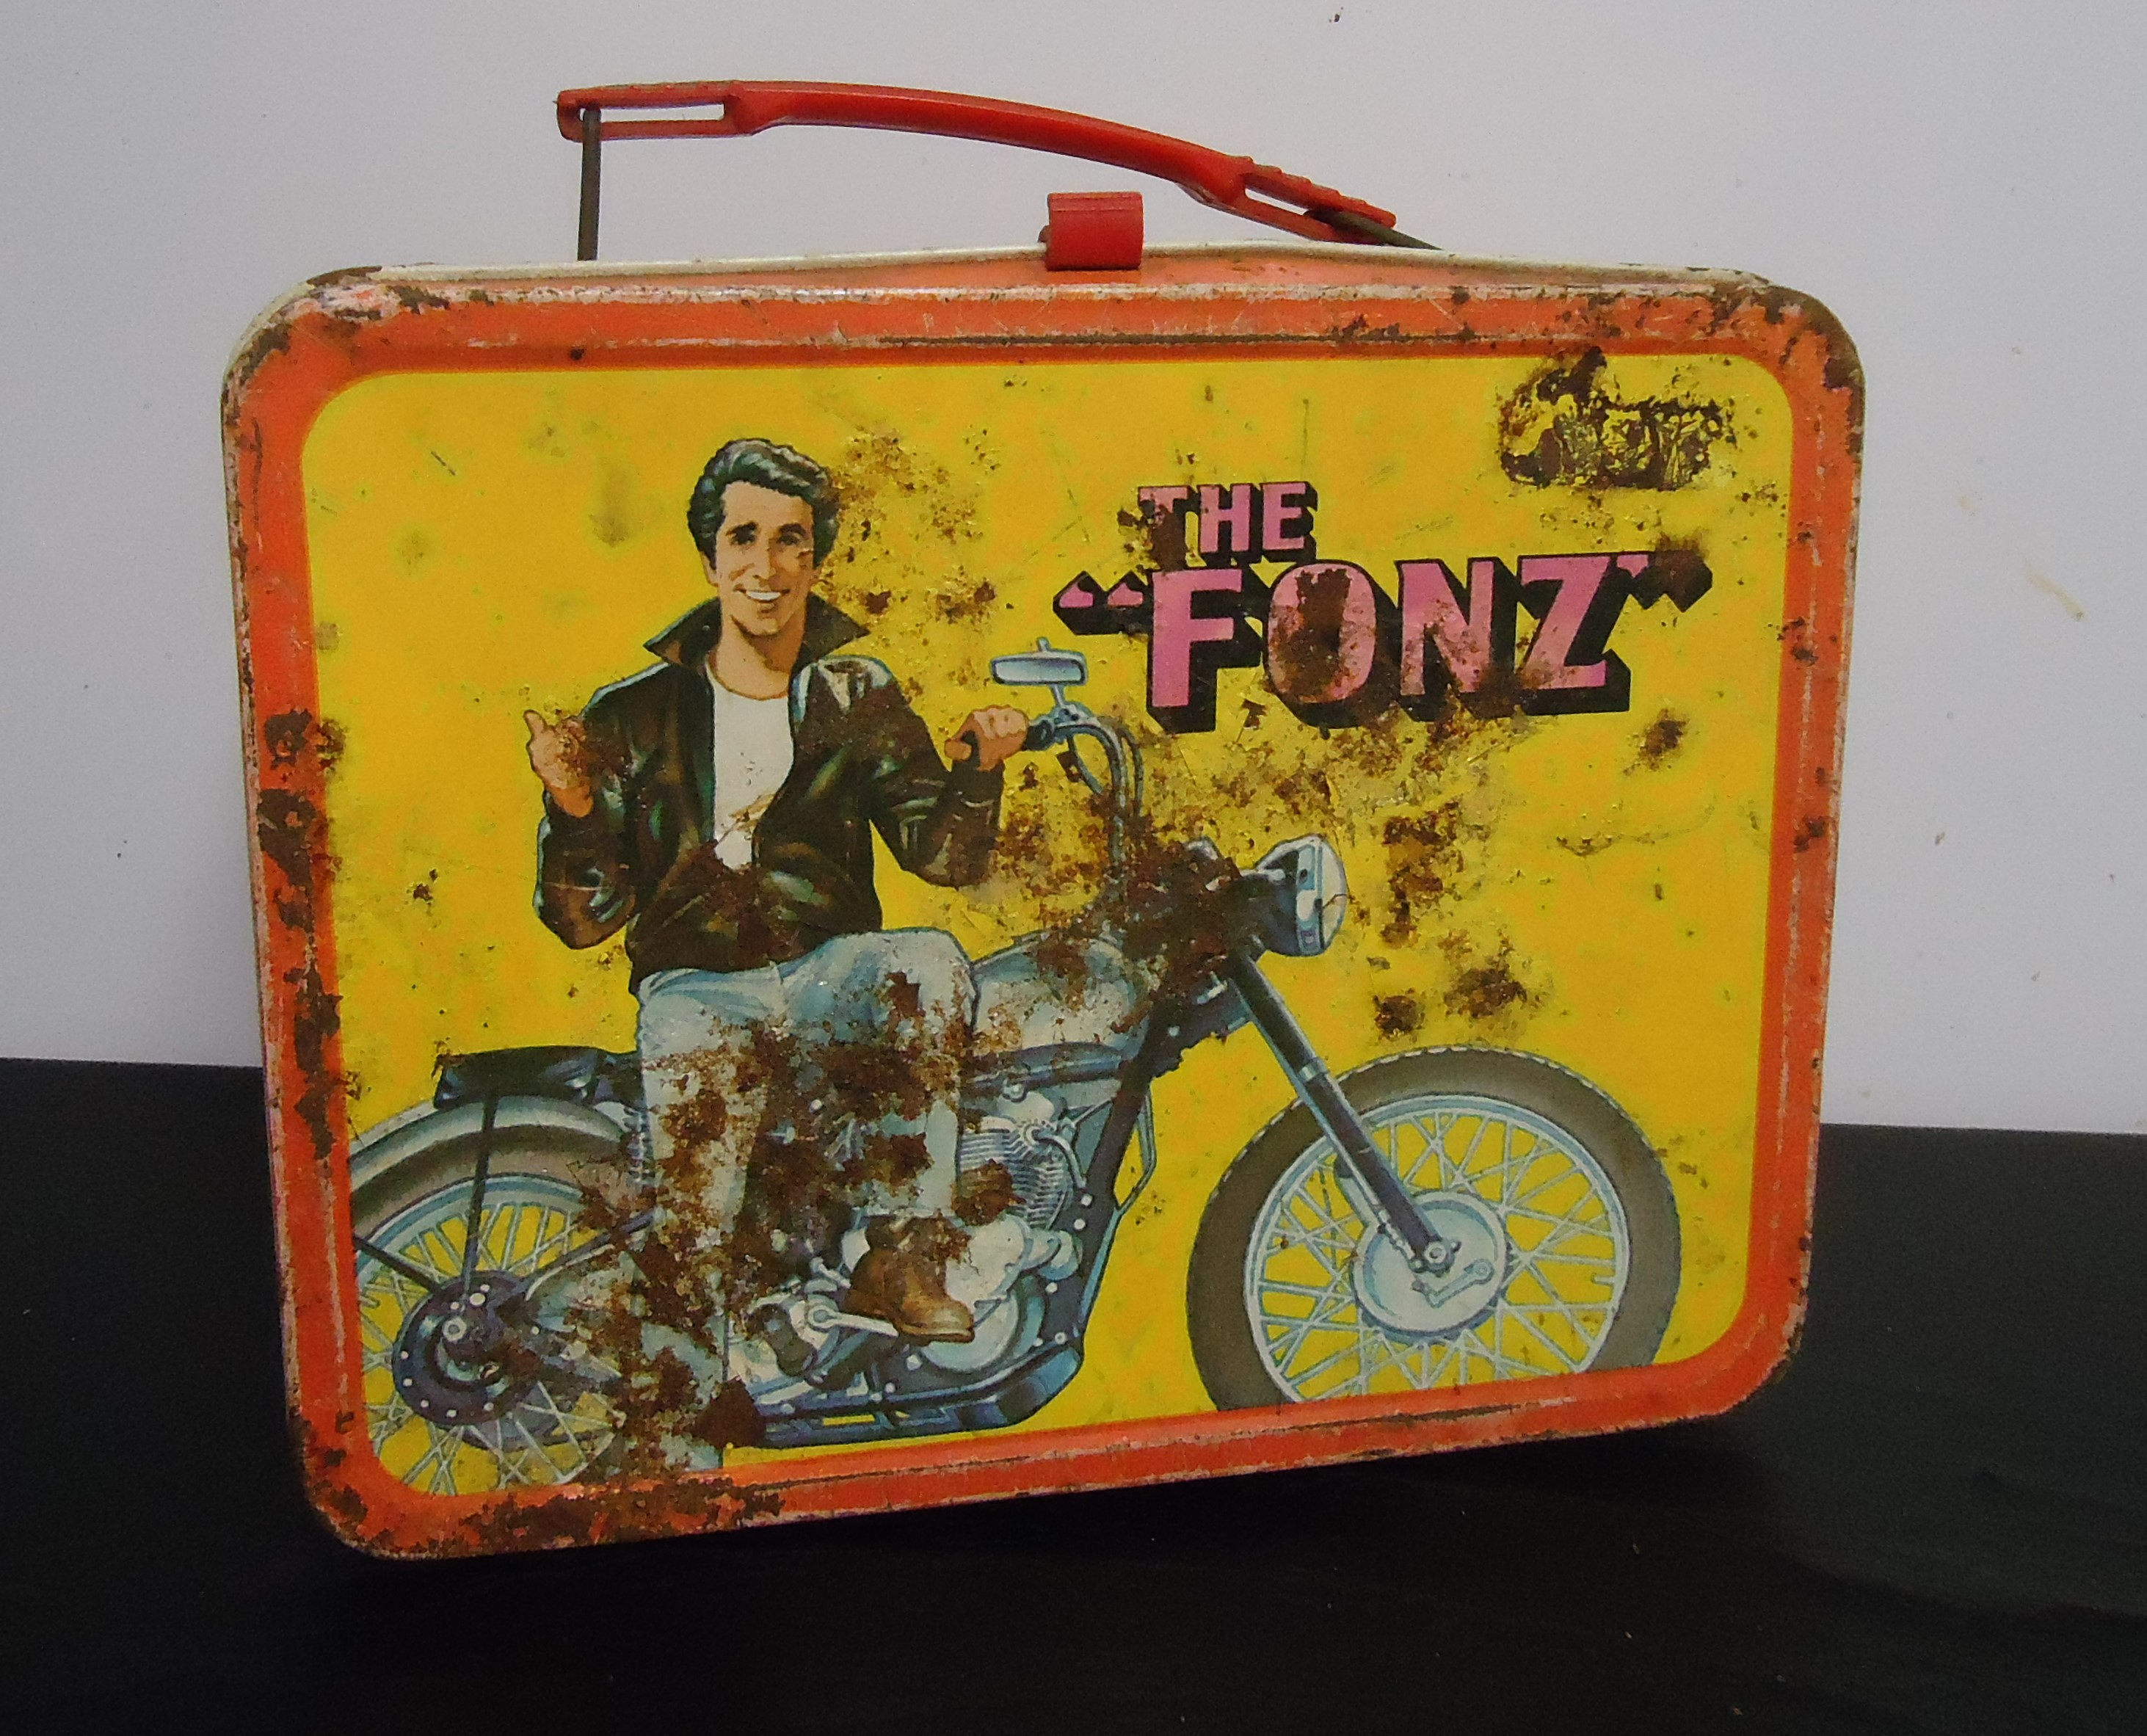 """(9) """"Happy Days"""" (The Fonz) Metal Lunch Box W/Out Thermos $38.00"""